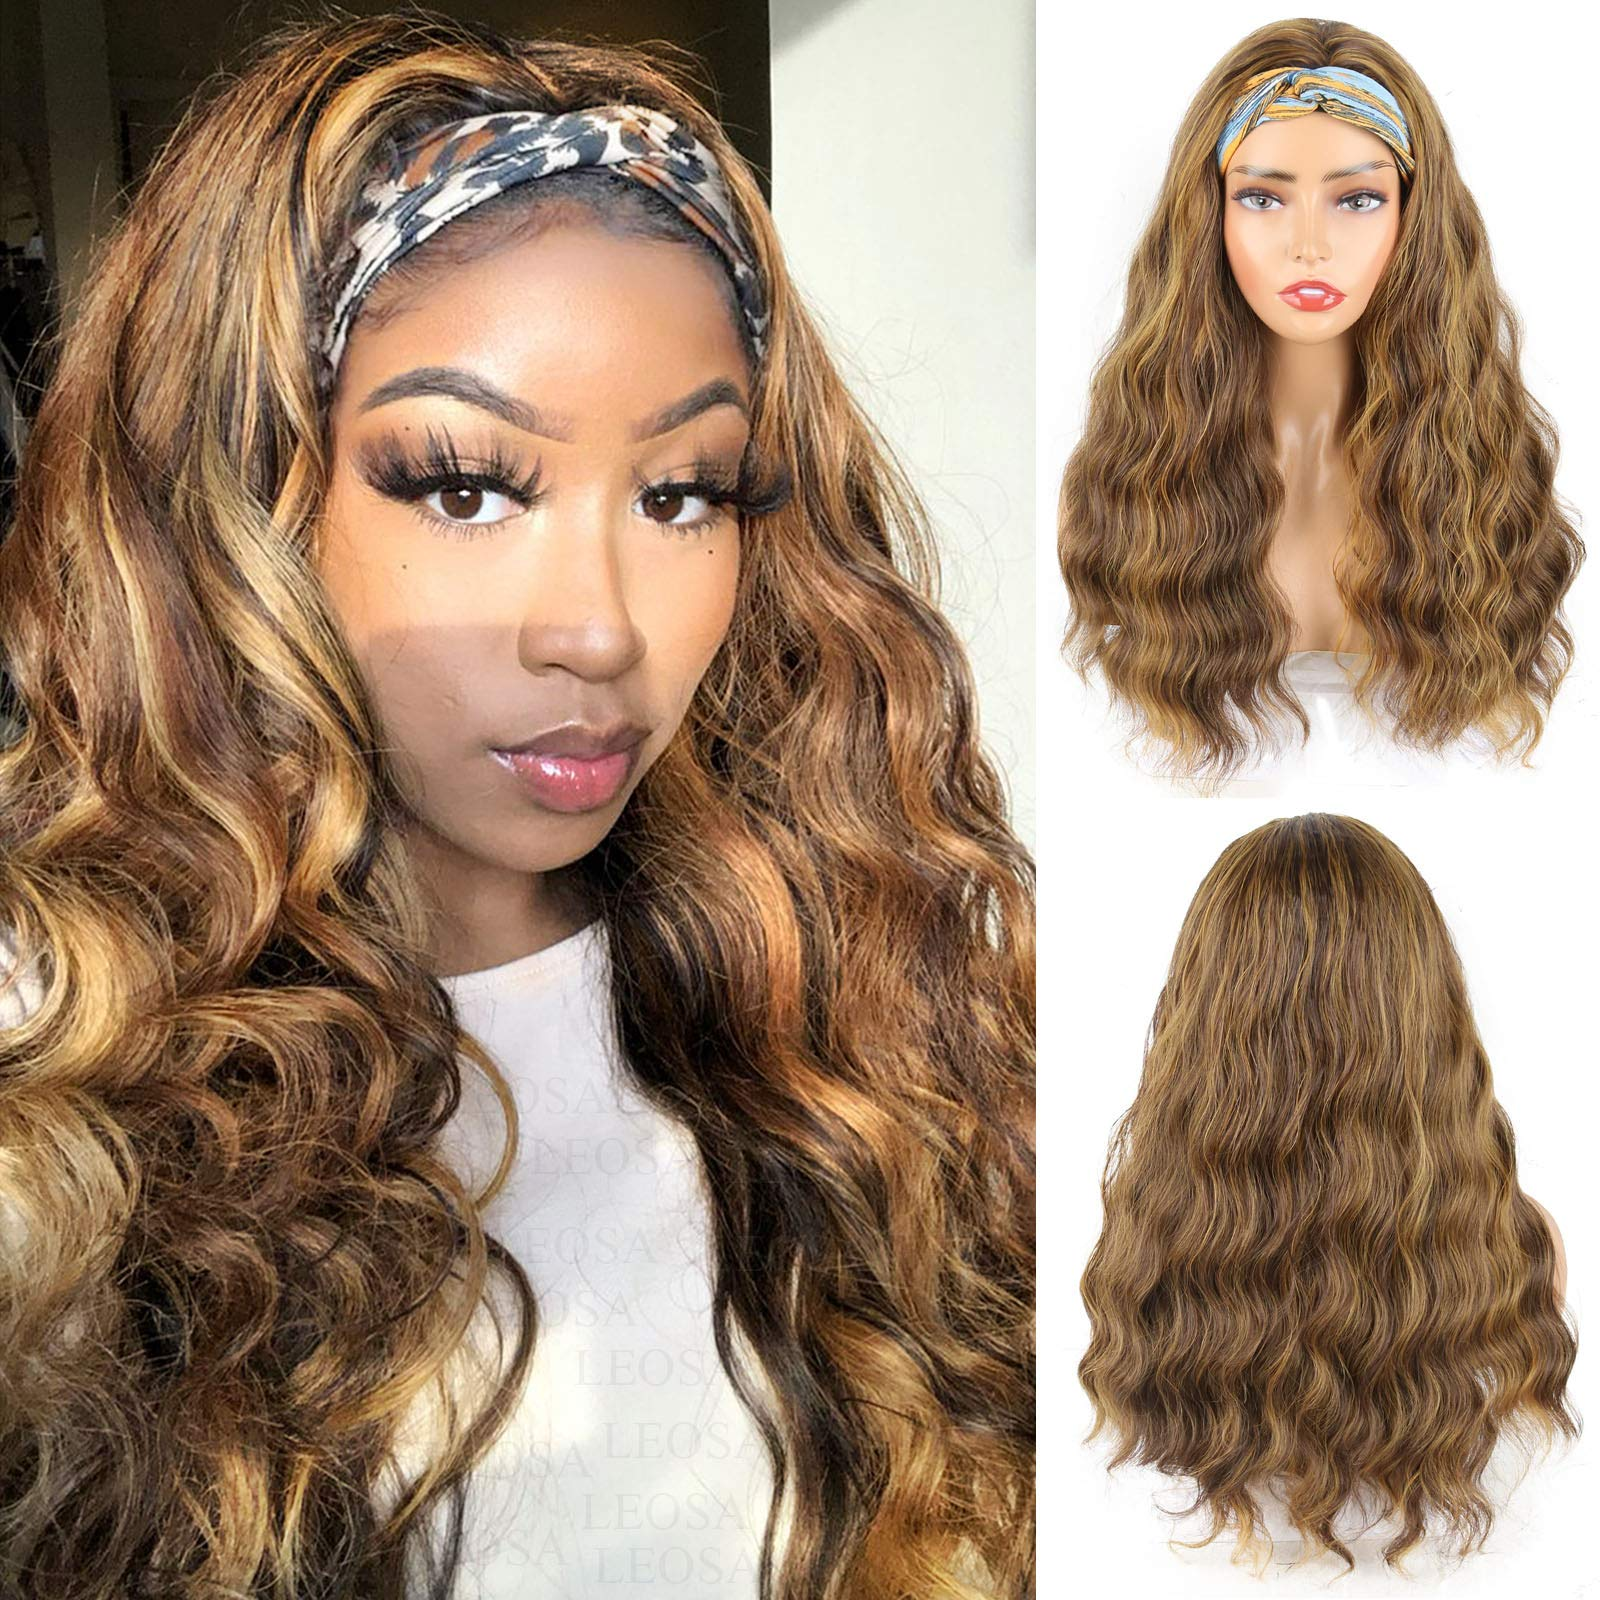 LEOSA Body Wave Headband Wigs with Highlight Blonde Wig Synthetic Brown Honey Blonde Wavy Wigs for Black Women Natural Looking Wavy Synthetic Wig with Headband Attached 4/27 Mix Brown Color Wig